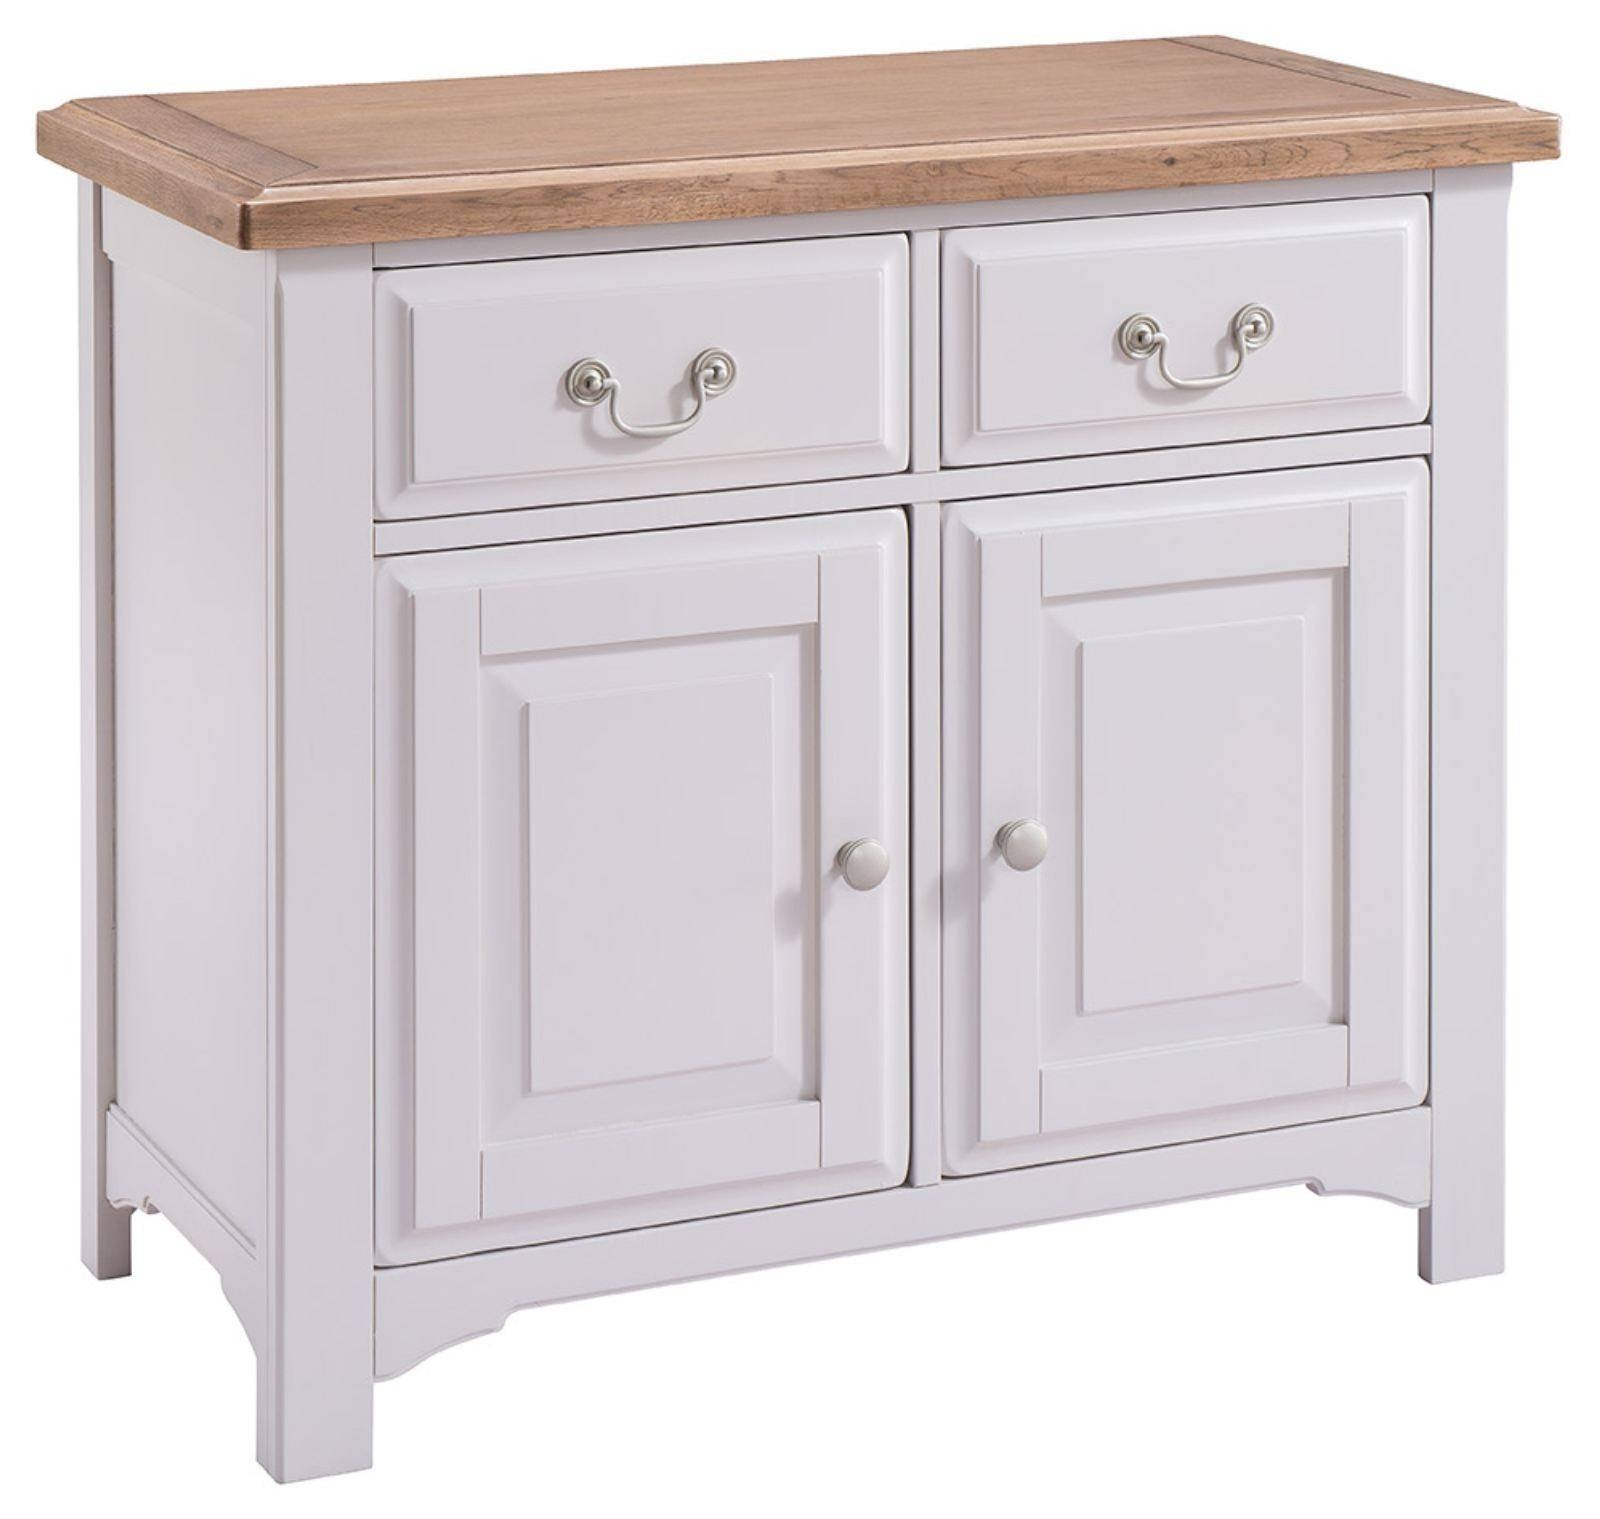 Hutch® - Buxton Light Grey Painted Small Sideboard with regard to Small Sideboards With Drawers (Image 9 of 30)